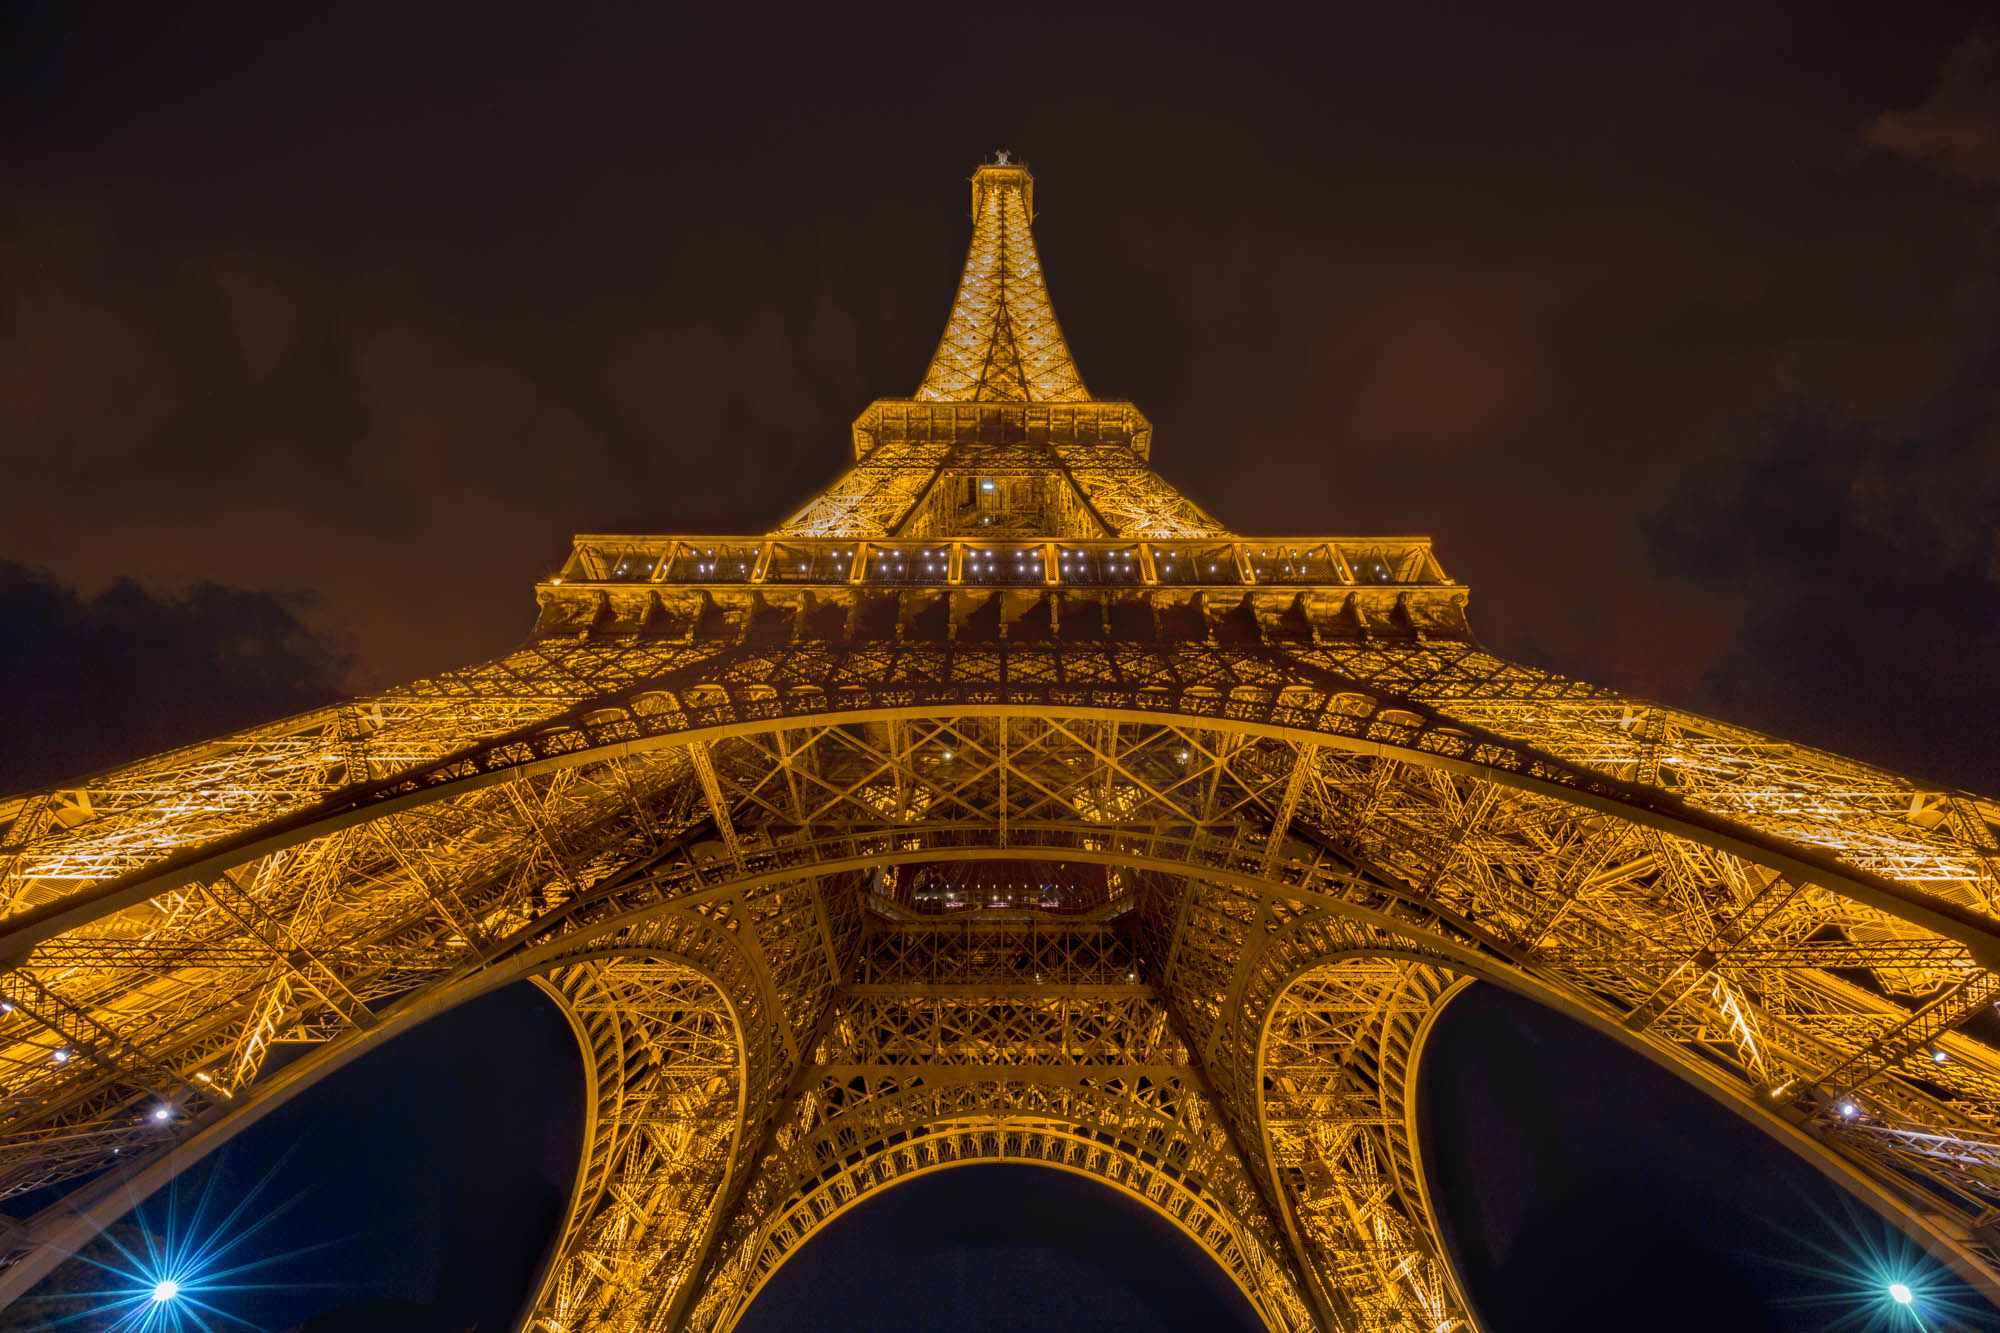 long exposure photography of the Eiffel Tower lit up and viewed from below in Paris France